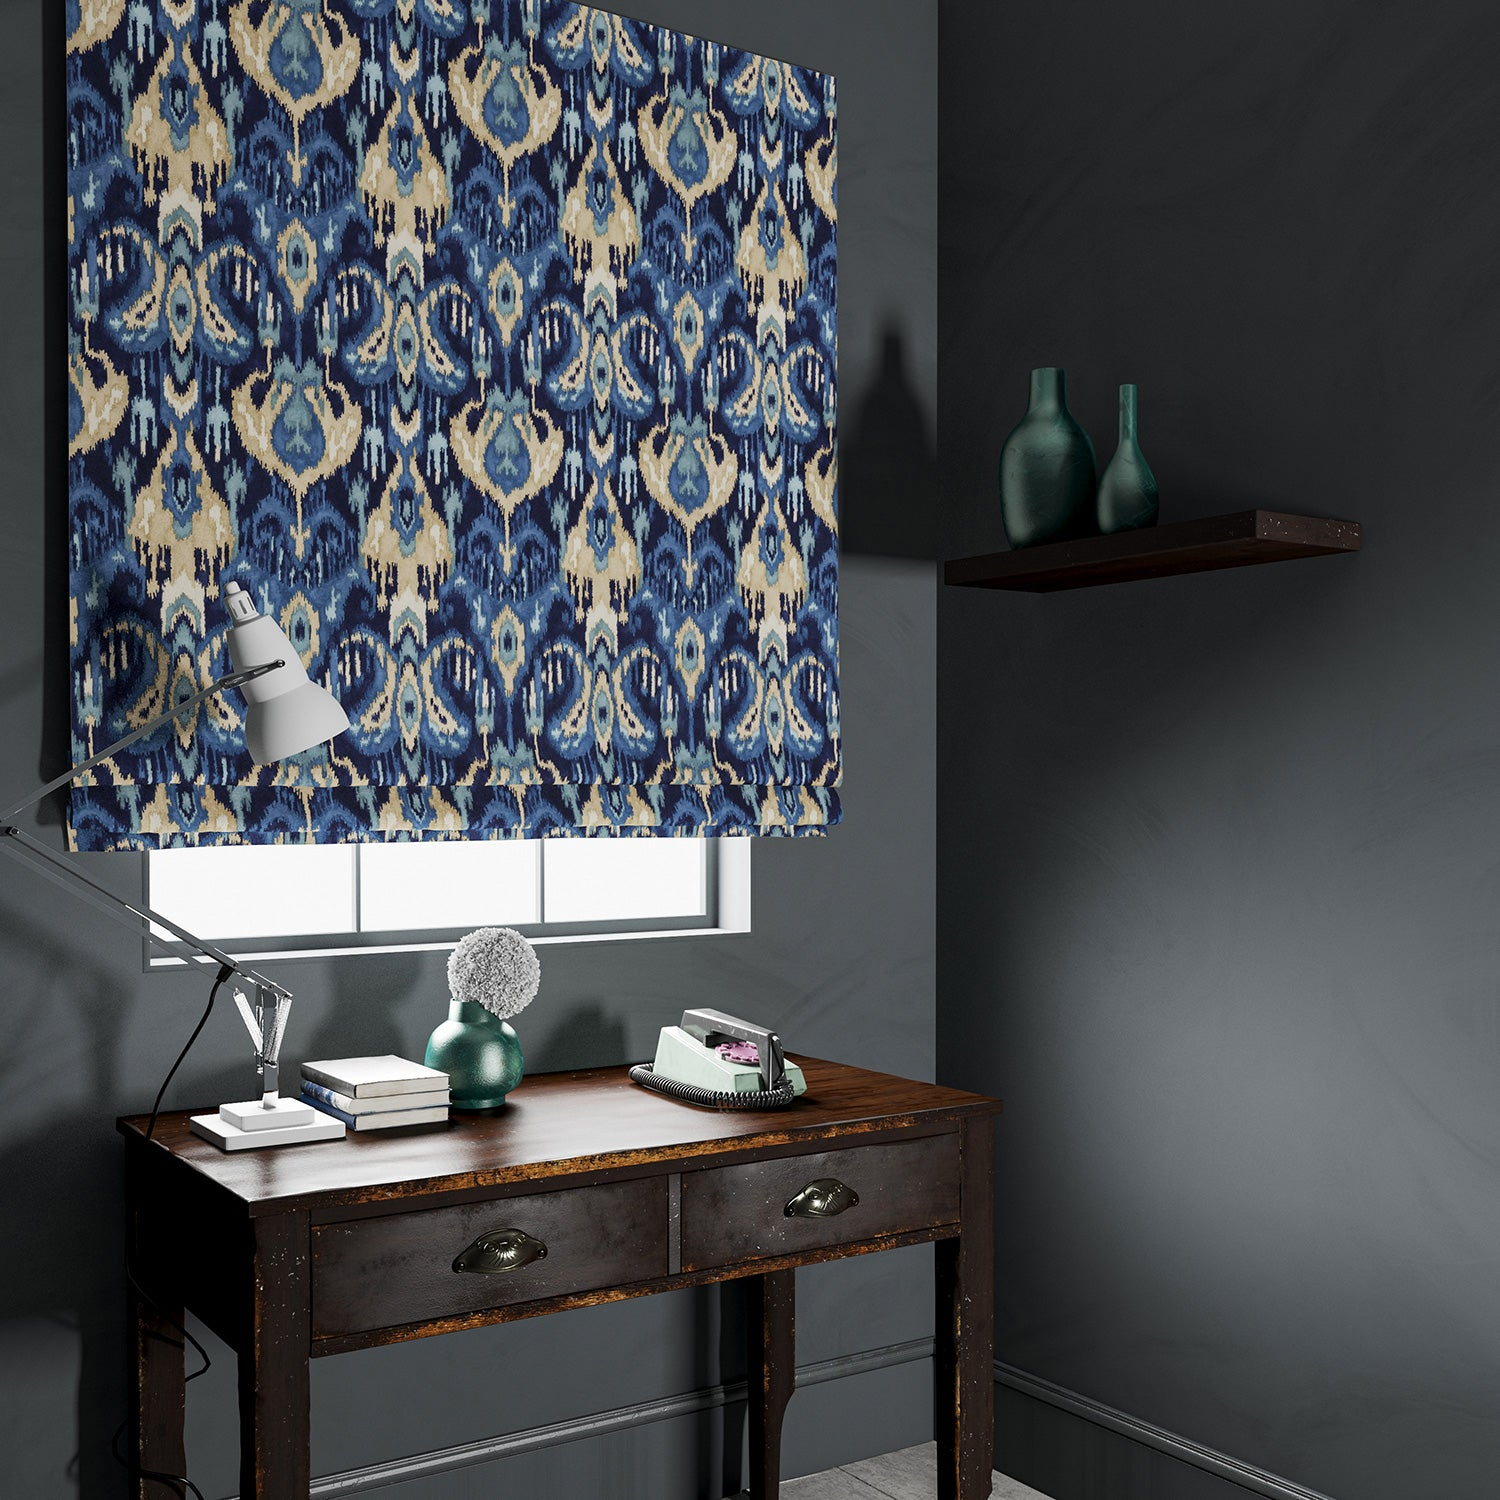 Blind in a blue velvet fabric with contemporary abstract design